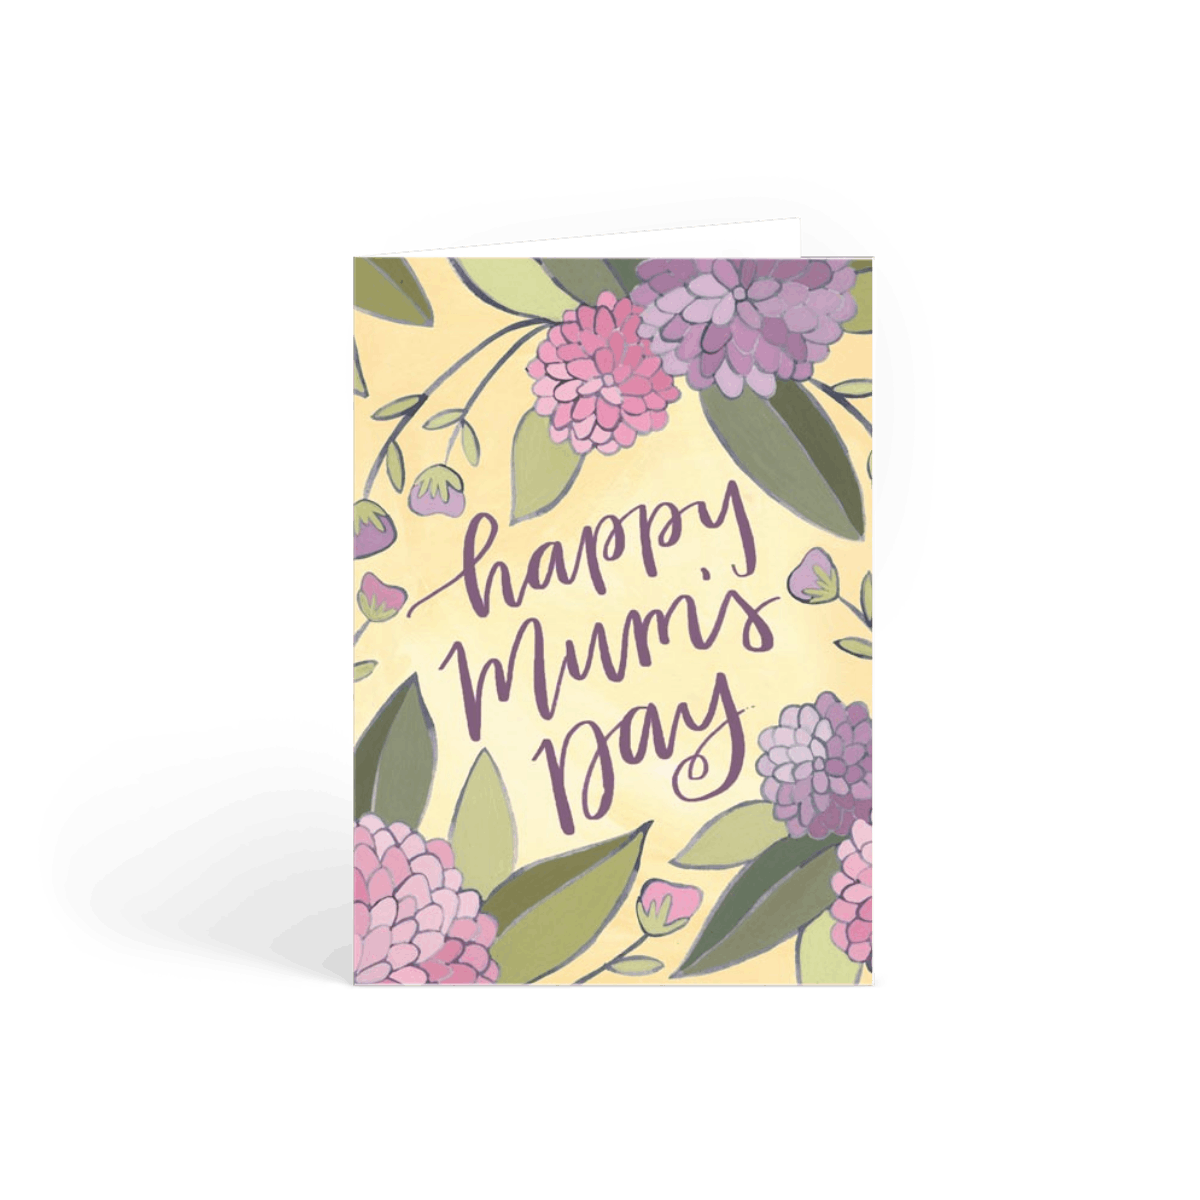 Https%3a%2f%2fwww.papier.com%2fproduct image%2f20103%2f2%2fhappy mum s day 5144 front 1488385744.png?ixlib=rb 1.1